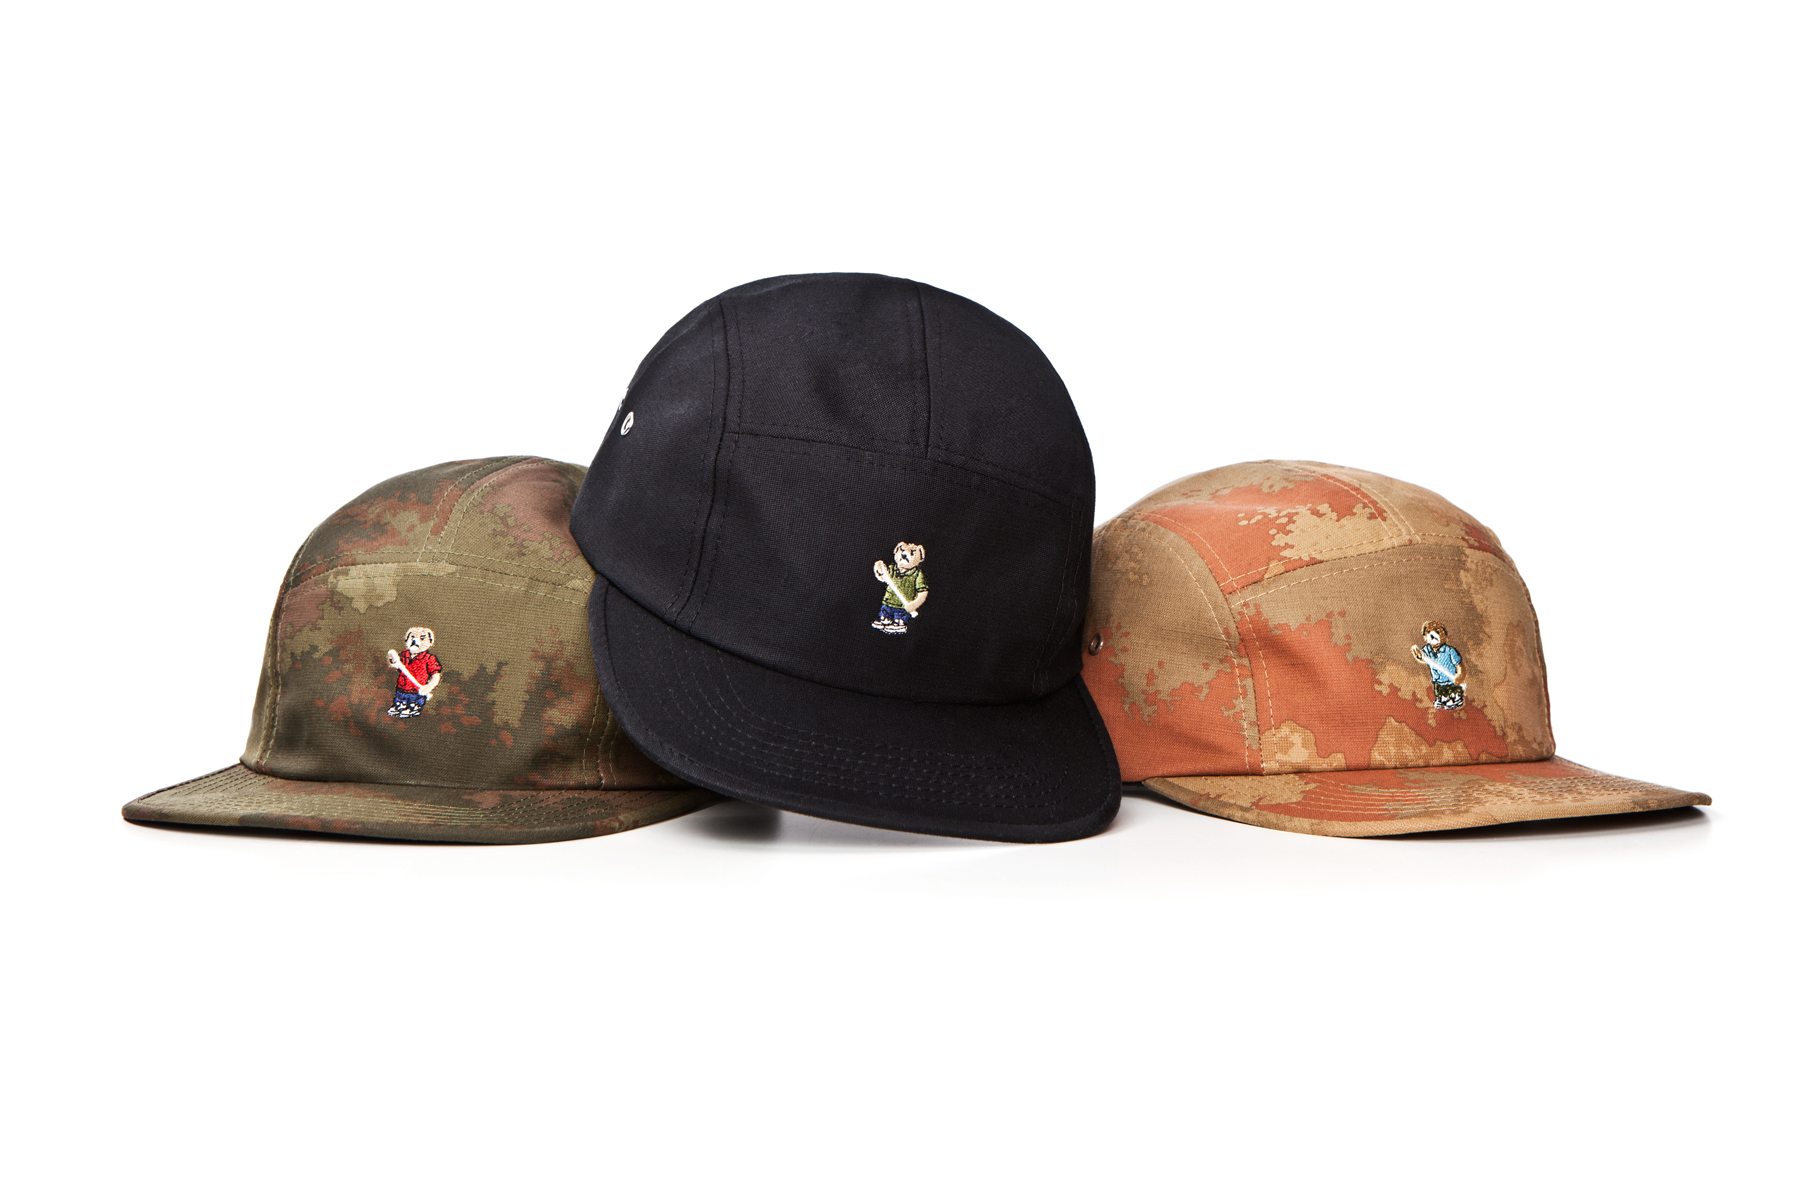 acapulco gold angry lo bear camp caps